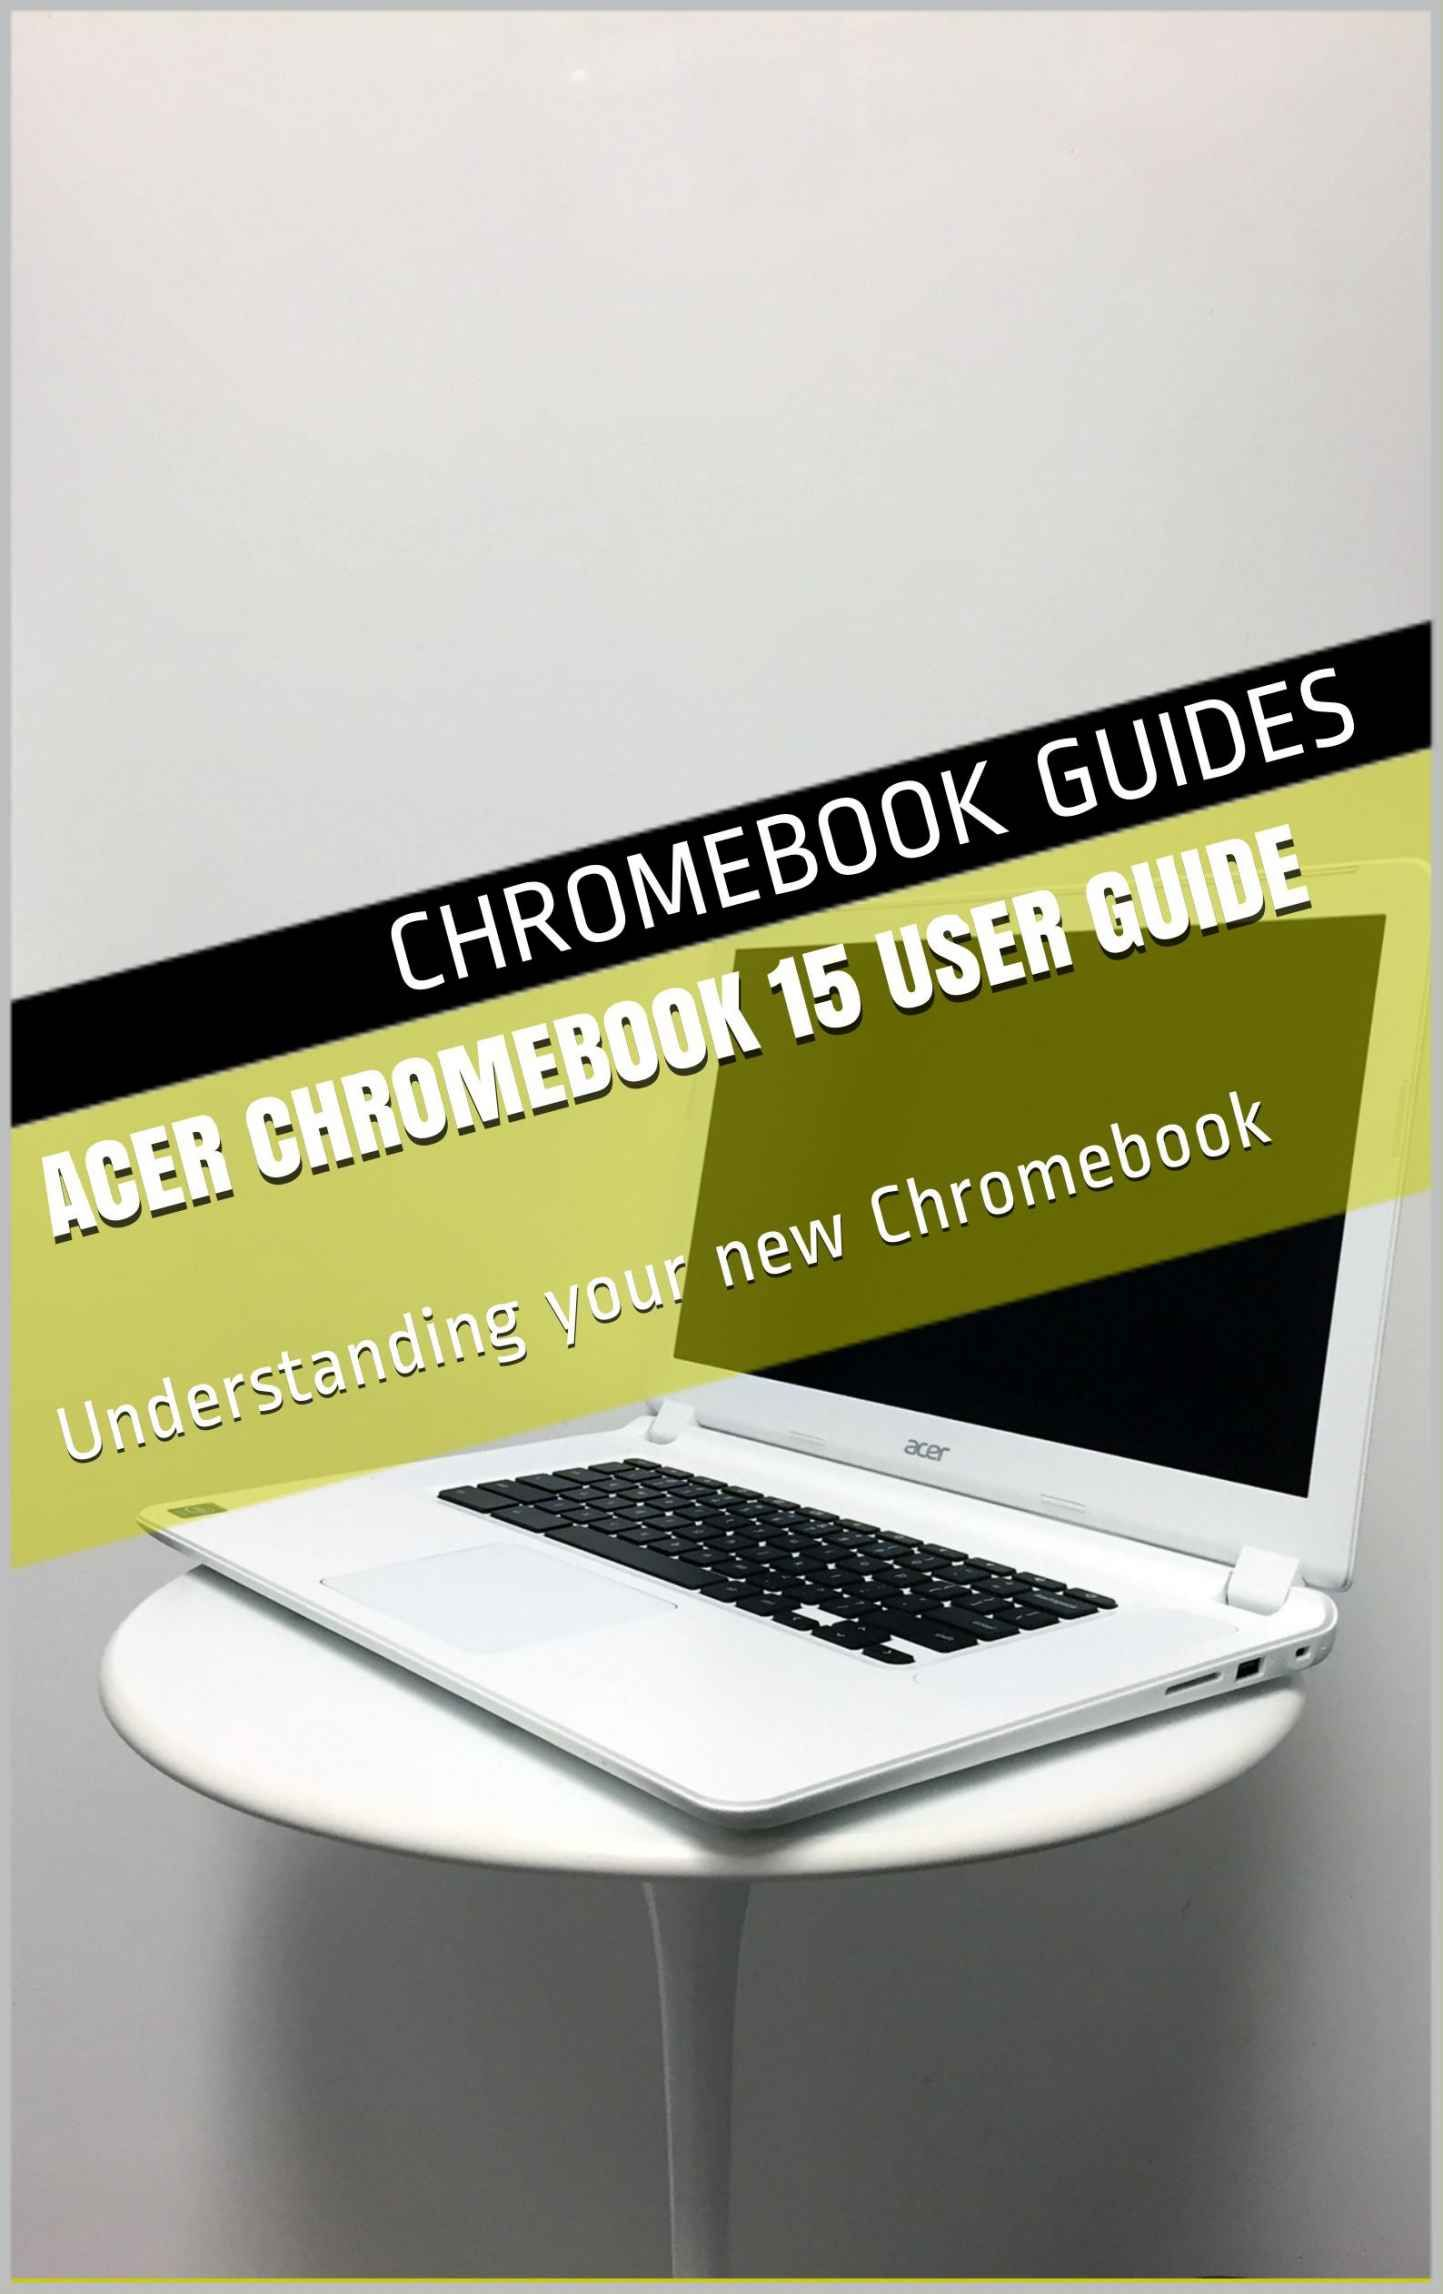 Acer Chromebook 15 User Guide: Understanding your new